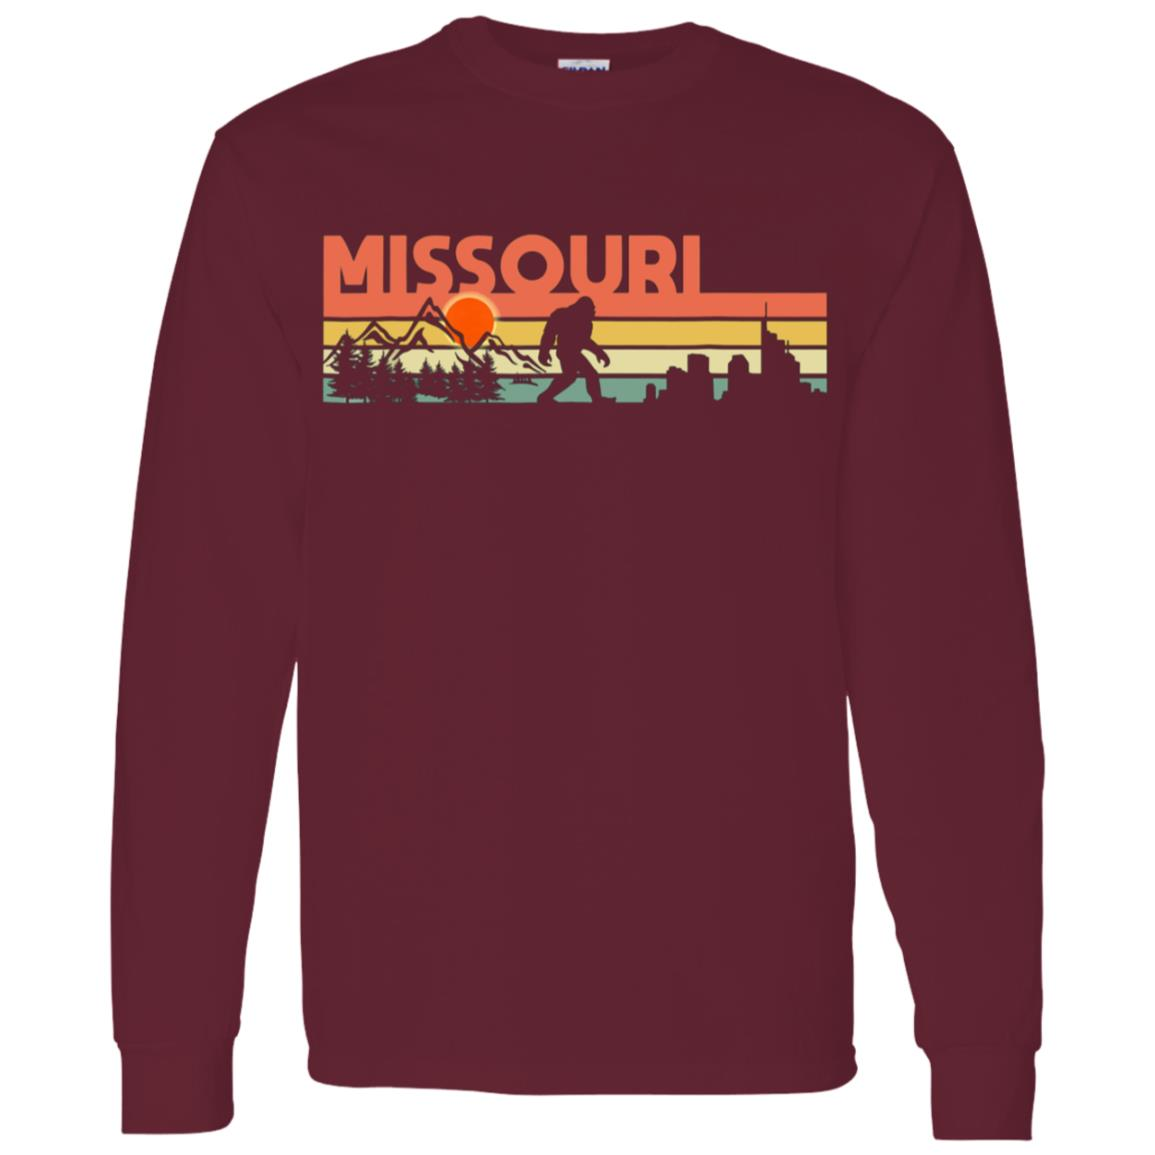 Vintage Missouri Bigfoot Silhouette Sun – Believe! Men Long Sleeve T-Shirt